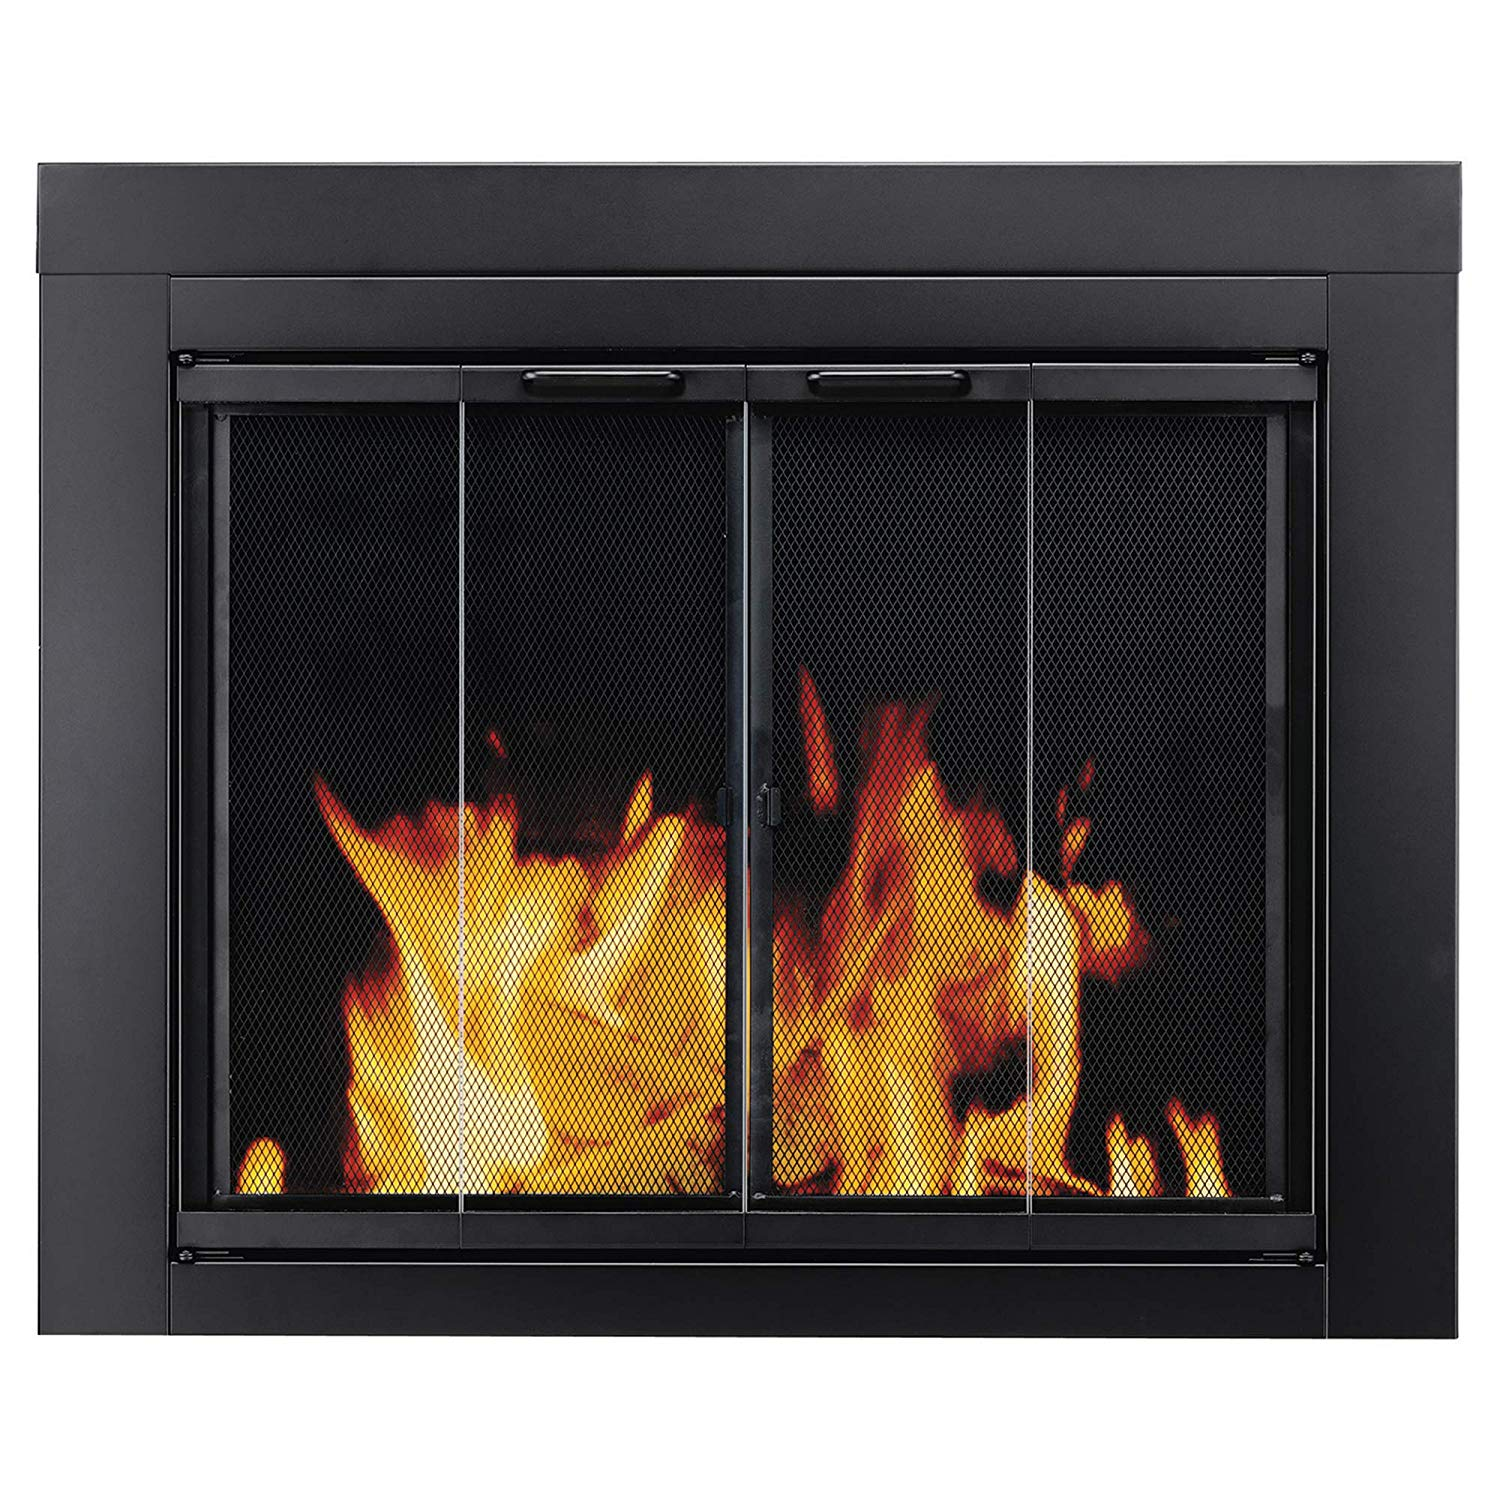 Fireplace Glass Doors for Sale Luxury Pleasant Hearth at 1000 ascot Fireplace Glass Door Black Small